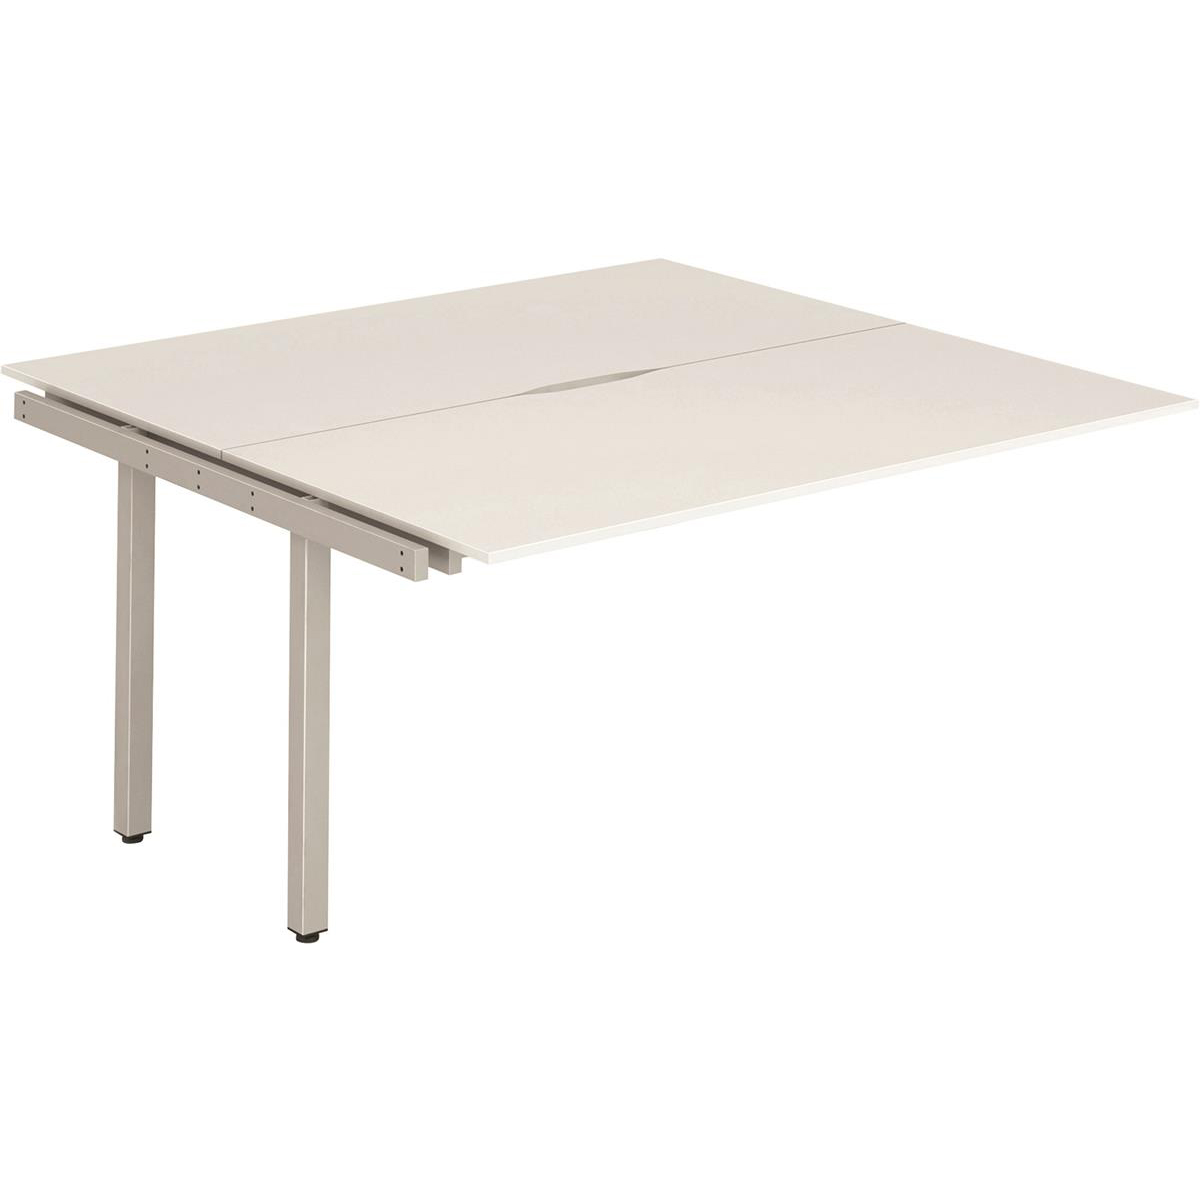 Trexus Bench Desk Double Extension Back to Back Configuration Silver Leg 1200x1600mm White Ref BE220